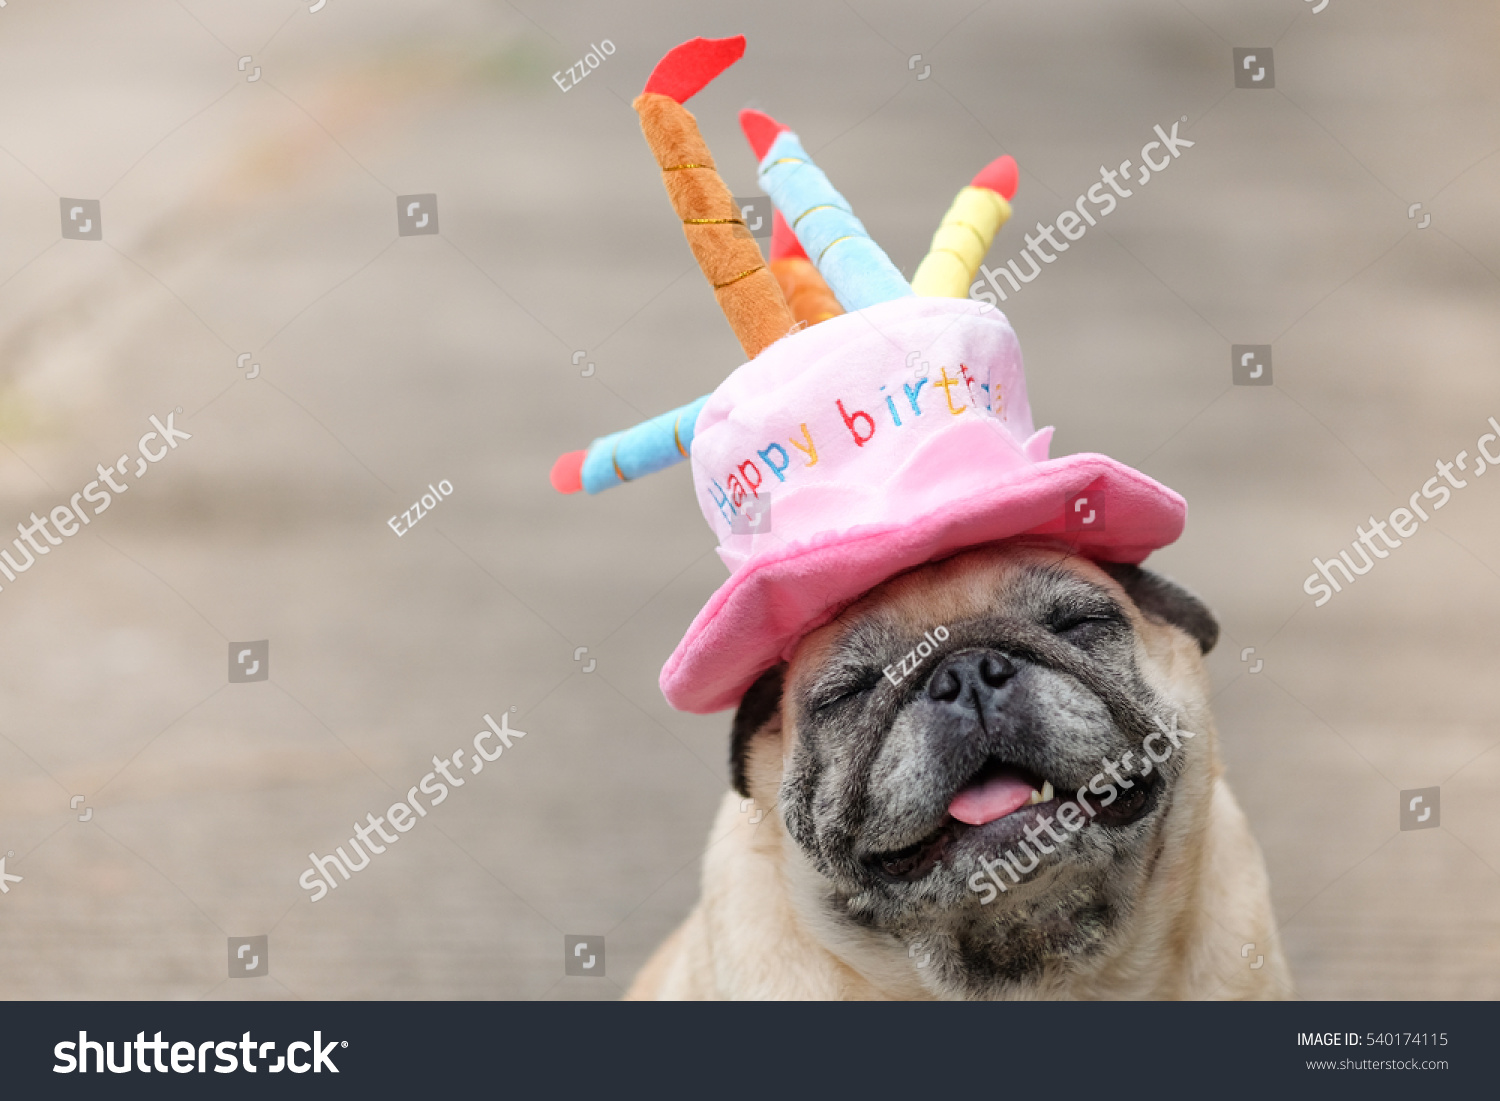 Pug Dog Wearing Pink Happy Birthday Hat With Blurry Background